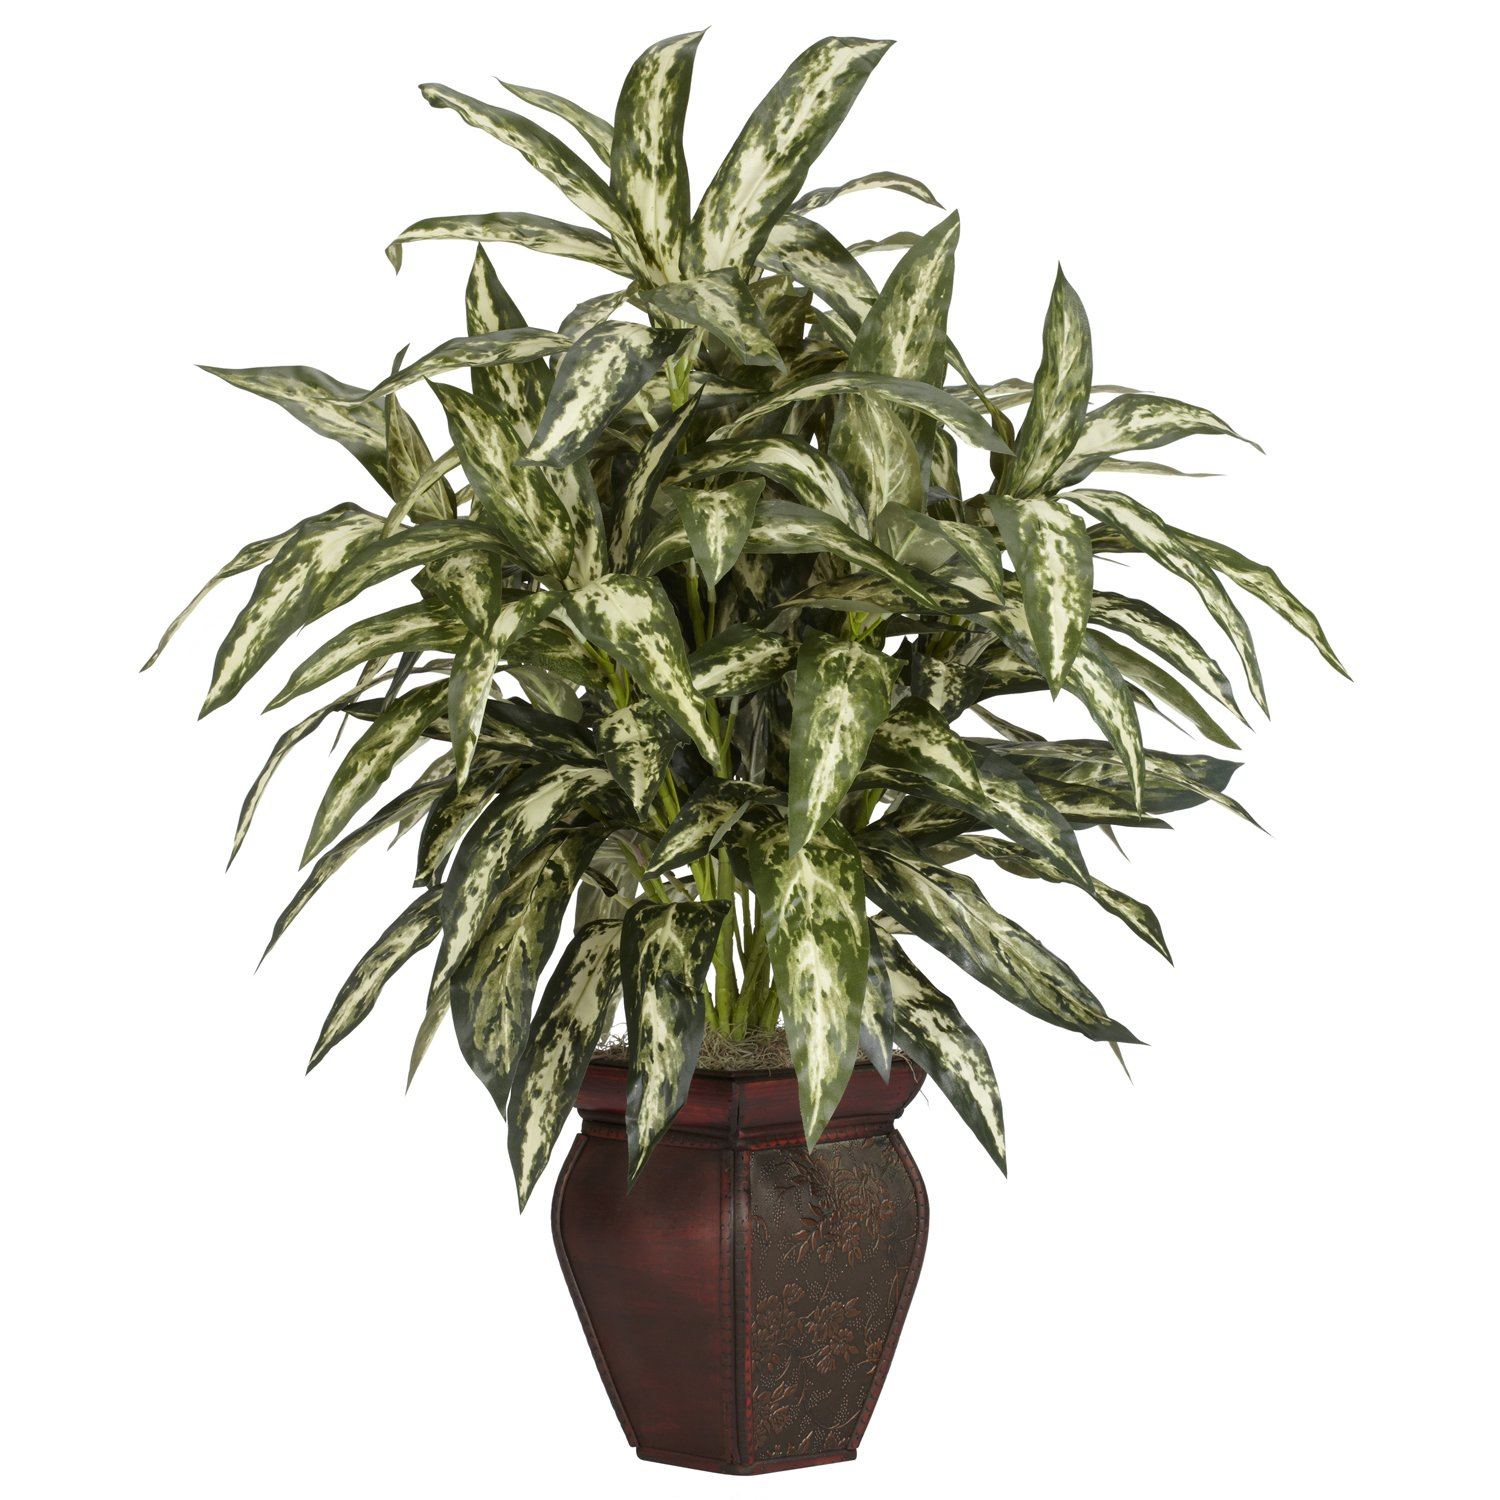 Nearly Natural 6673 Aglaonema with Vase Decorative Silk Plant, Green by Nearly Natural